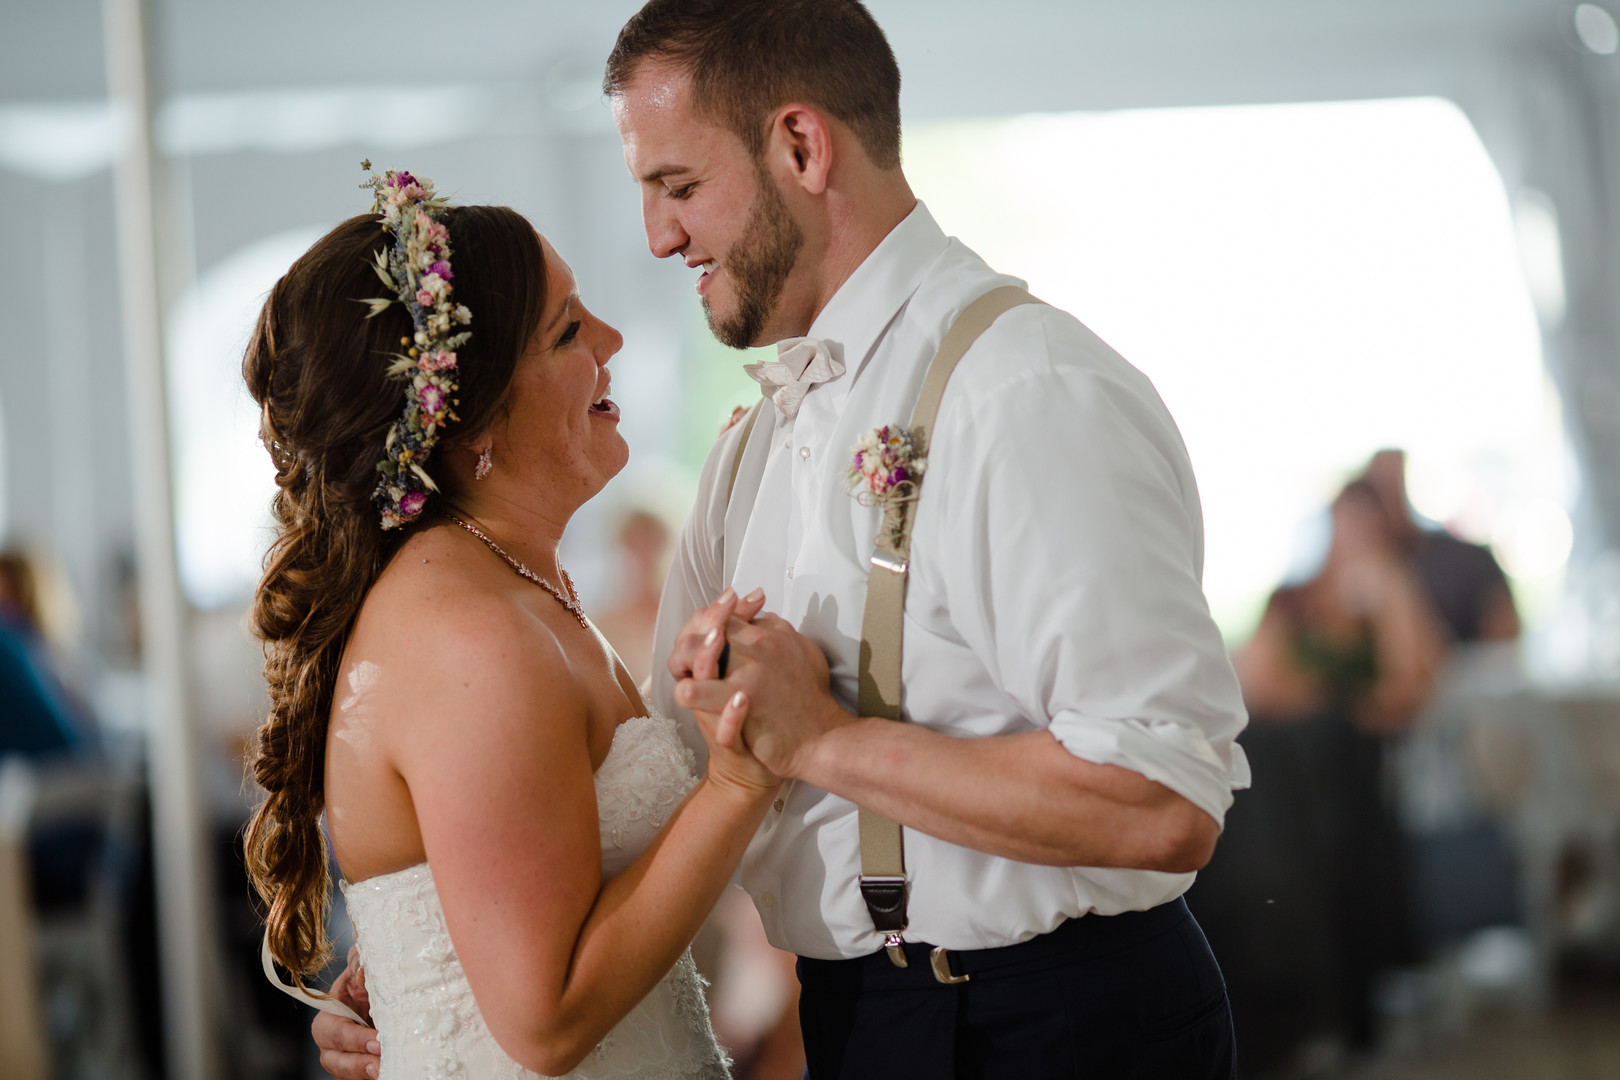 Bride and groom's first dance: Rustic country wedding in Minooka, IL captured by Katie Brsan Photography. Visit CHItheeWED.com for more wedding inspiration!